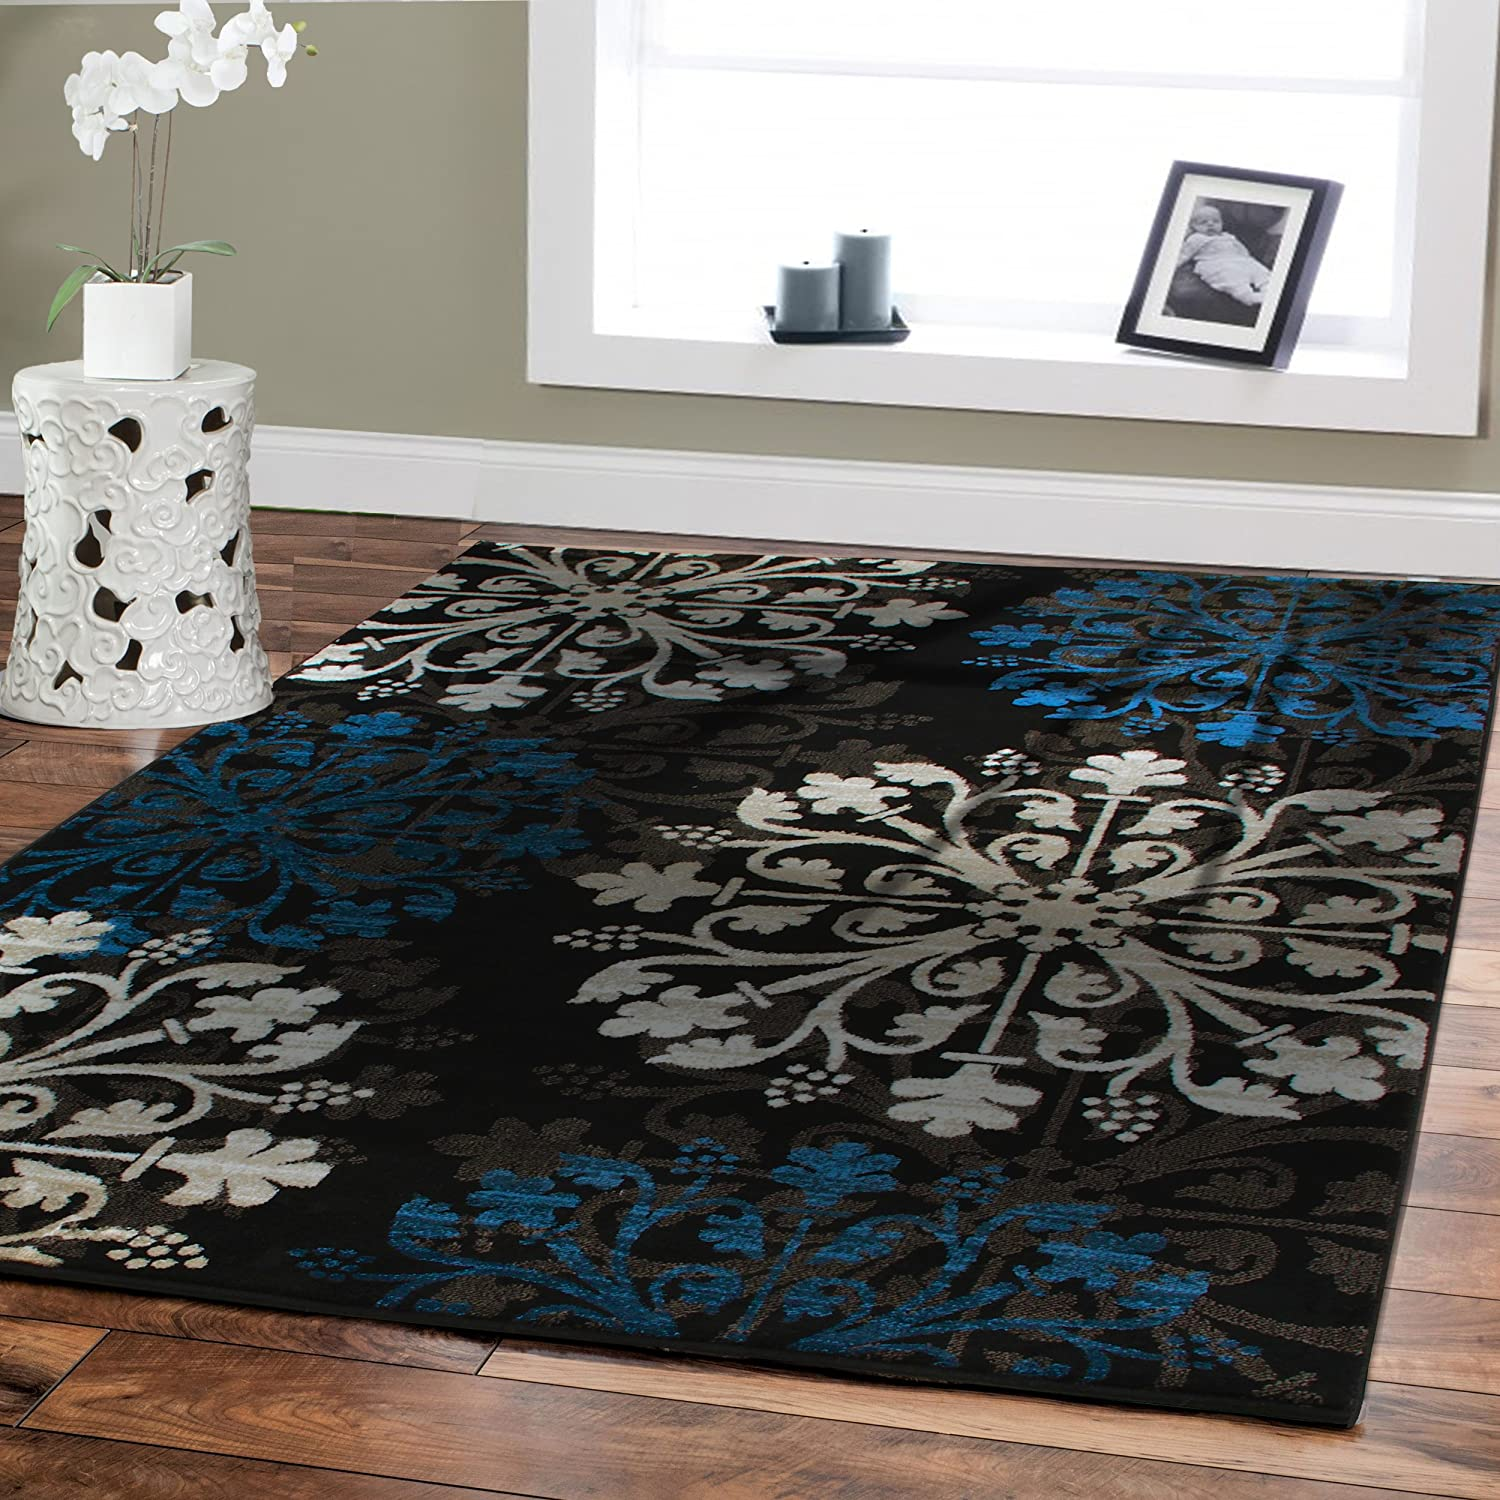 New Small Rug For Bedroom Black 2x3 Foyer Rug Indoor Area Rugs Clearance Beige Black Cream Brown Blue Carpet For Kitchen 2 By 4 Front Door Mats Bathroom Carpet